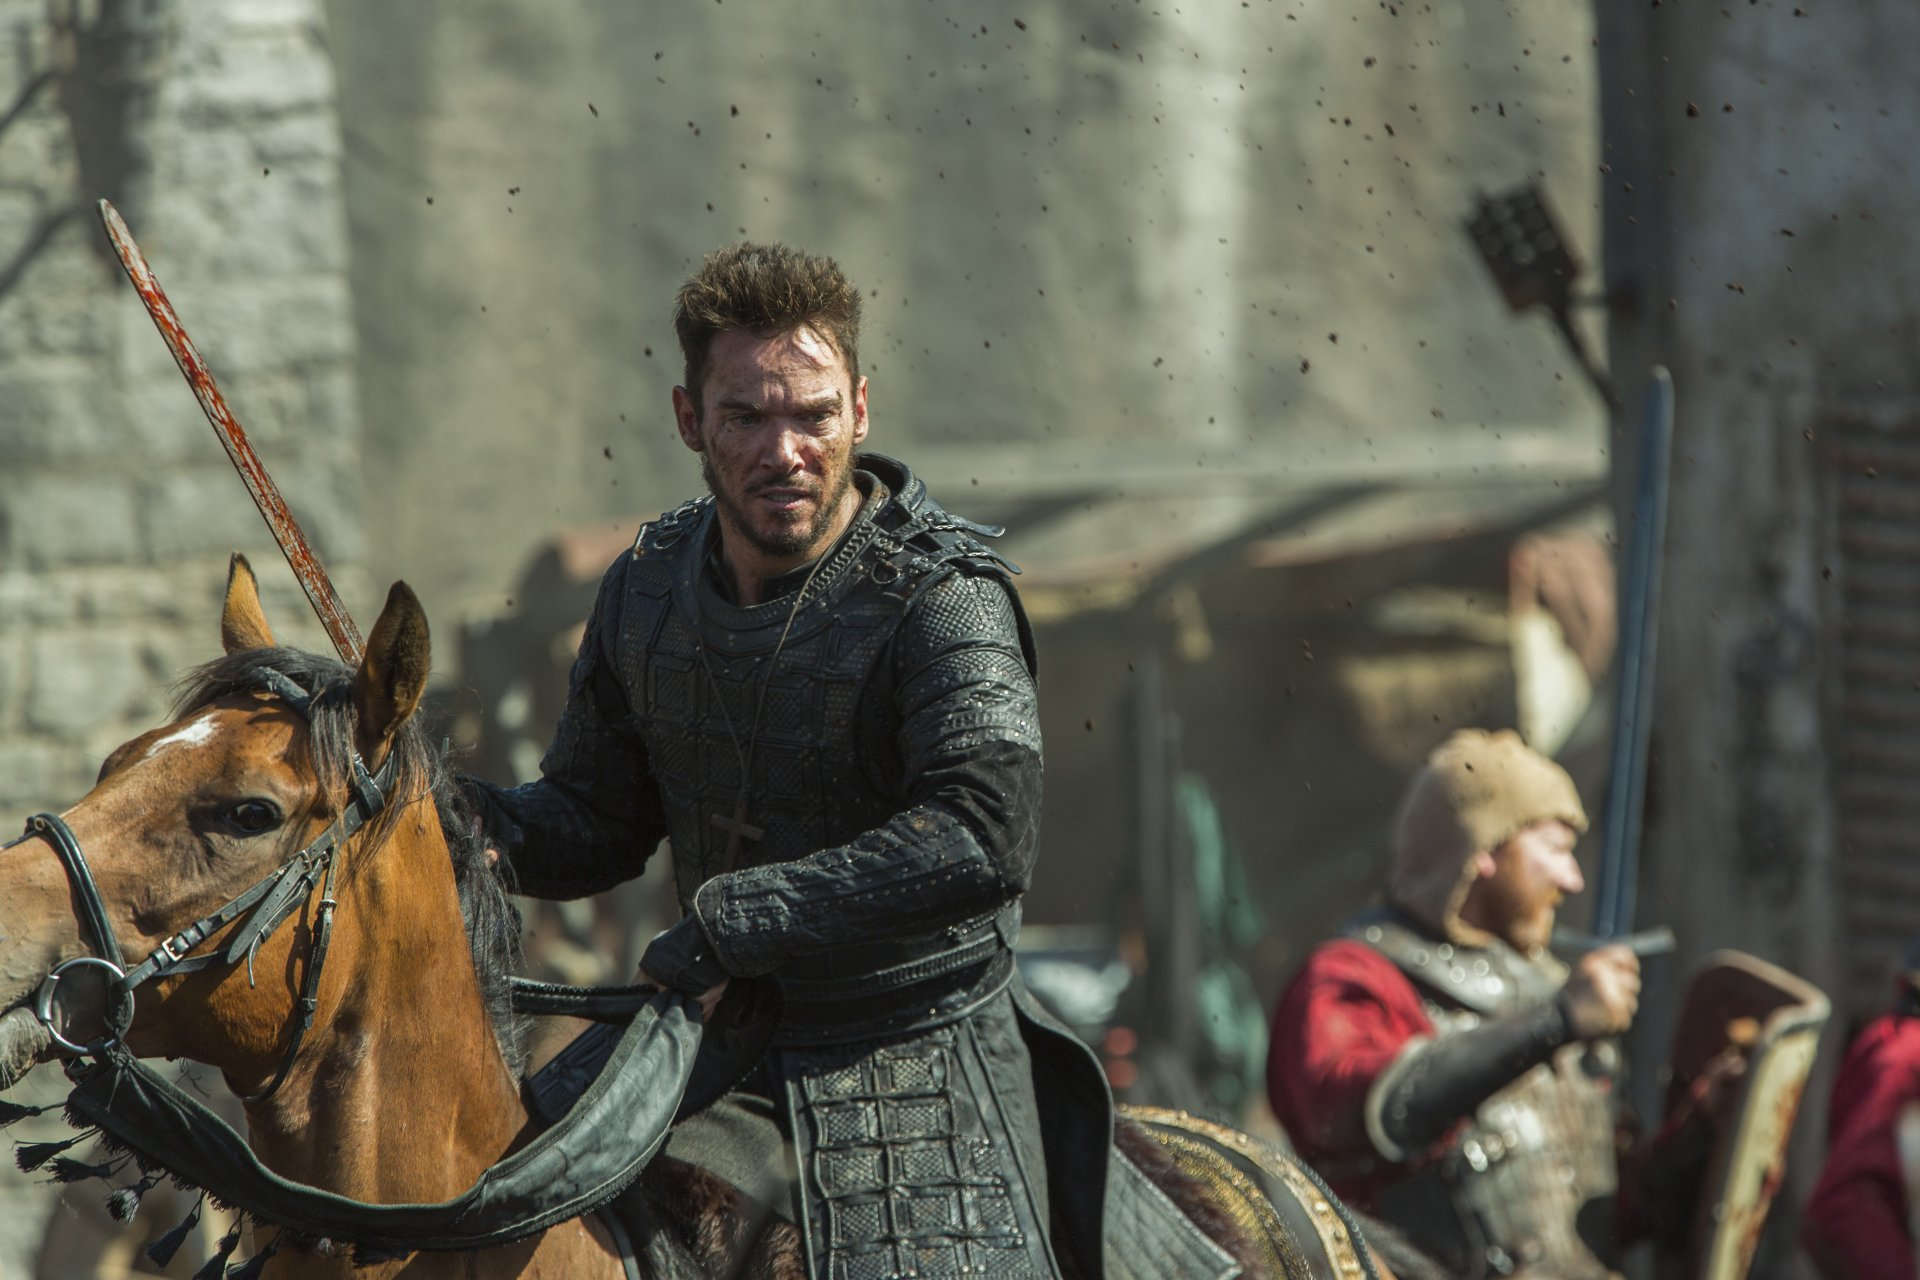 TV Show - Vikings  Jonathan Rhys Meyers Heahmund (Vikings) Wallpaper